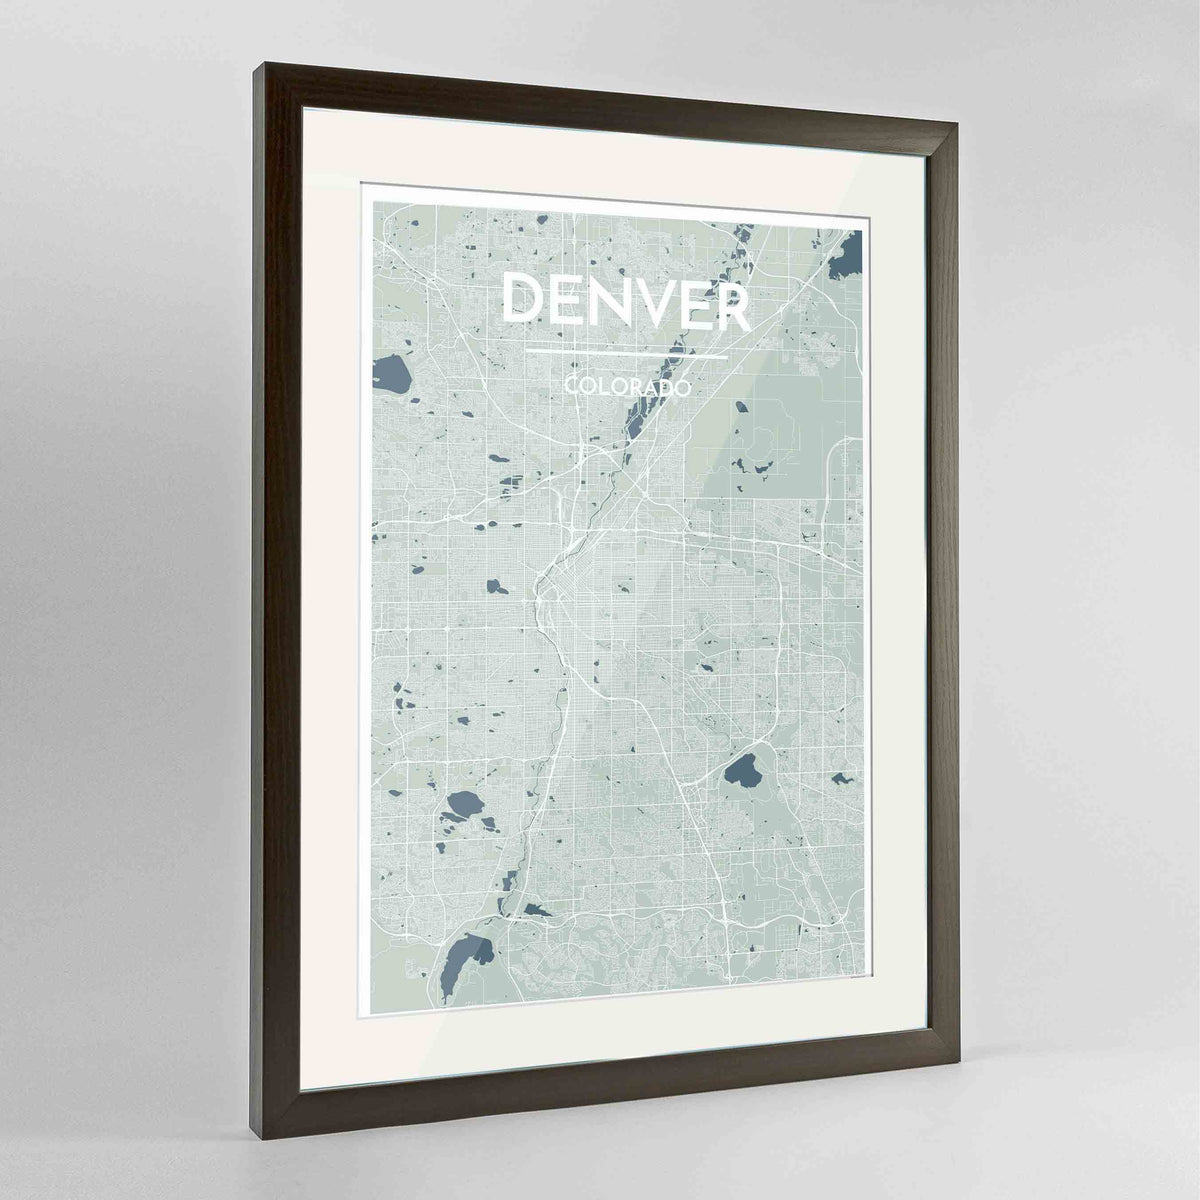 "Framed Denver Map Art Print 24x36"" Contemporary Walnut frame Point Two Design Group"